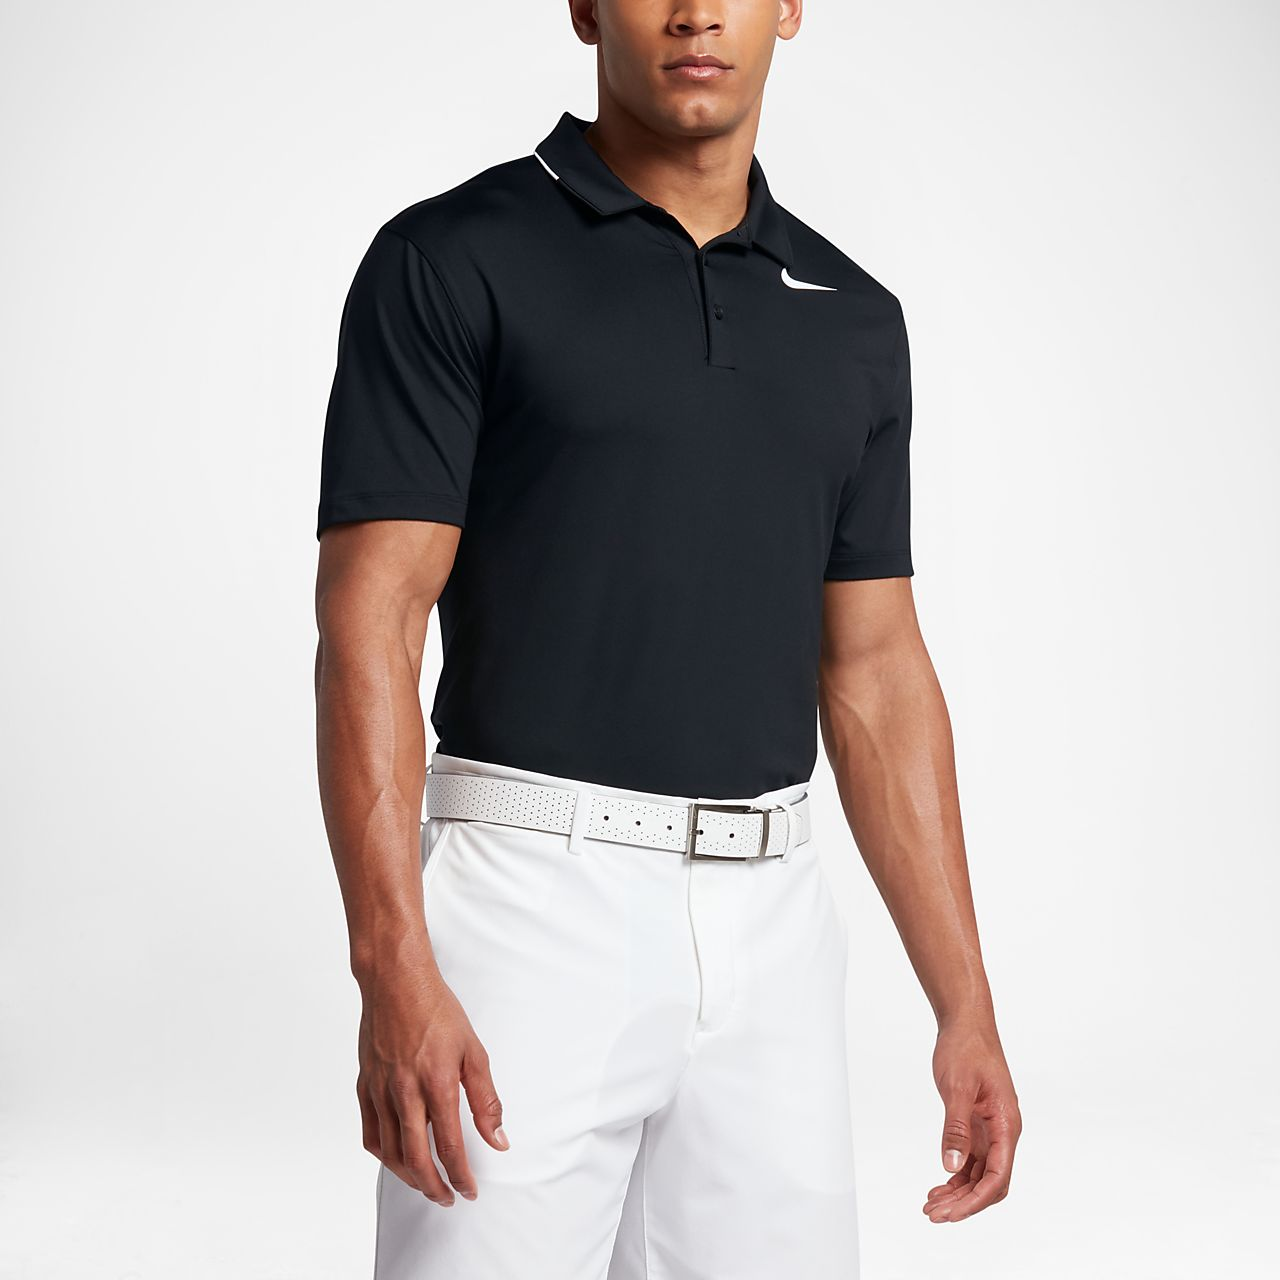 ... Nike Icon Elite Men's Standard Fit Golf Polo